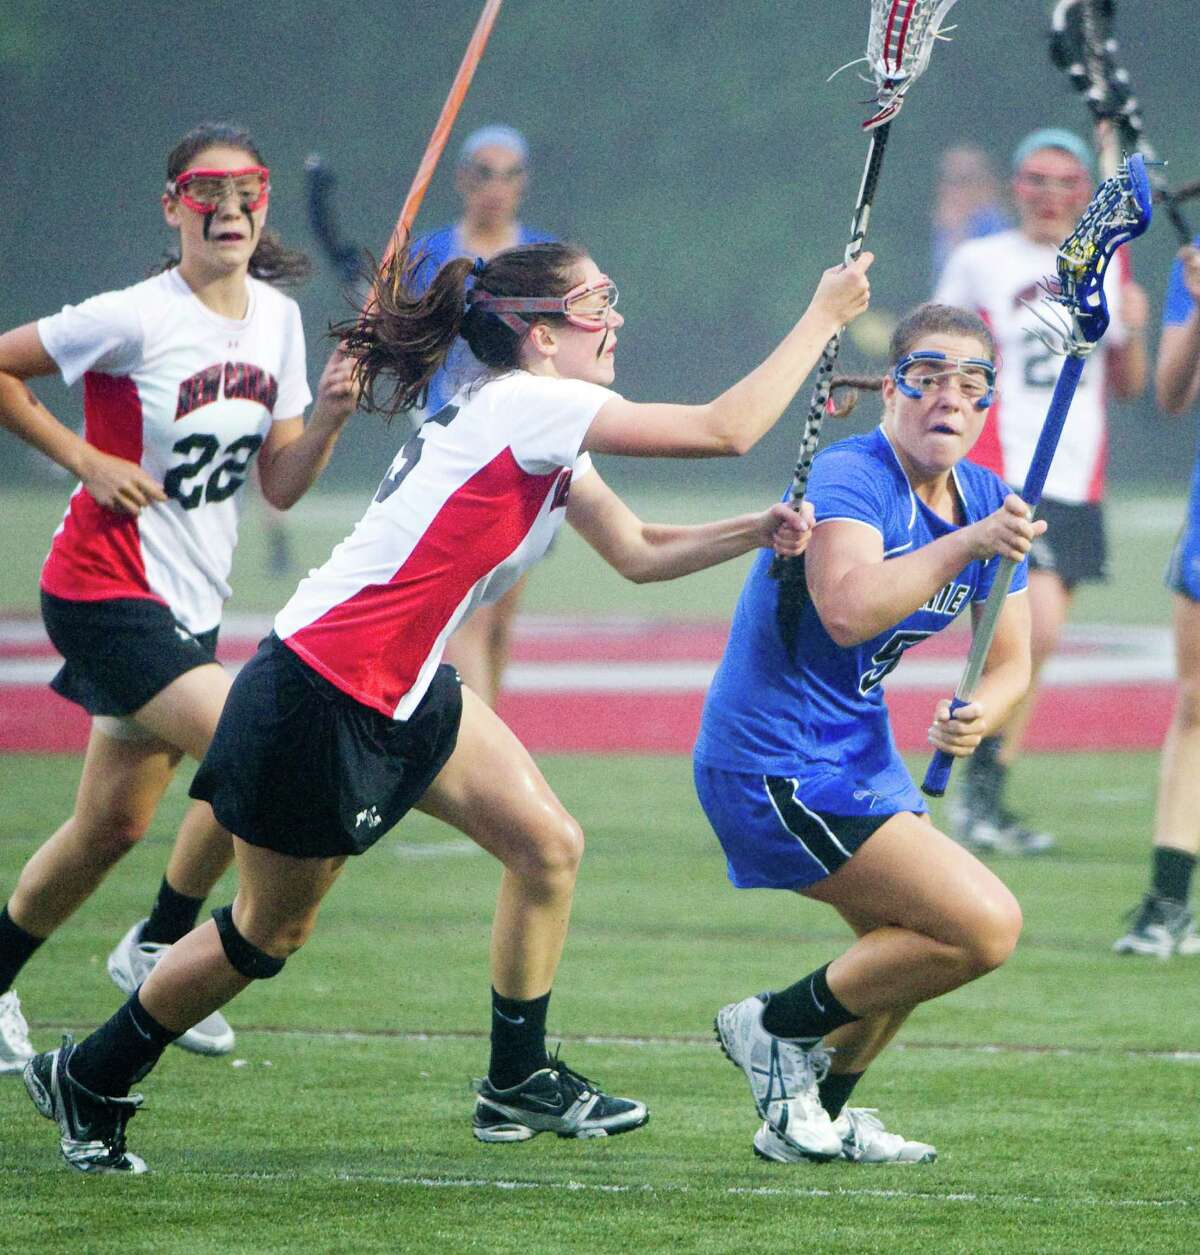 Darien's Brynn Gasparion turns the ball as New Canaan's Brianna McEwan closes in as New Canaan and Darien face off in the FCIAC Girls Lacrosse Semifinals at Dunning Field in New Canaan, Conn., May 21, 2012.